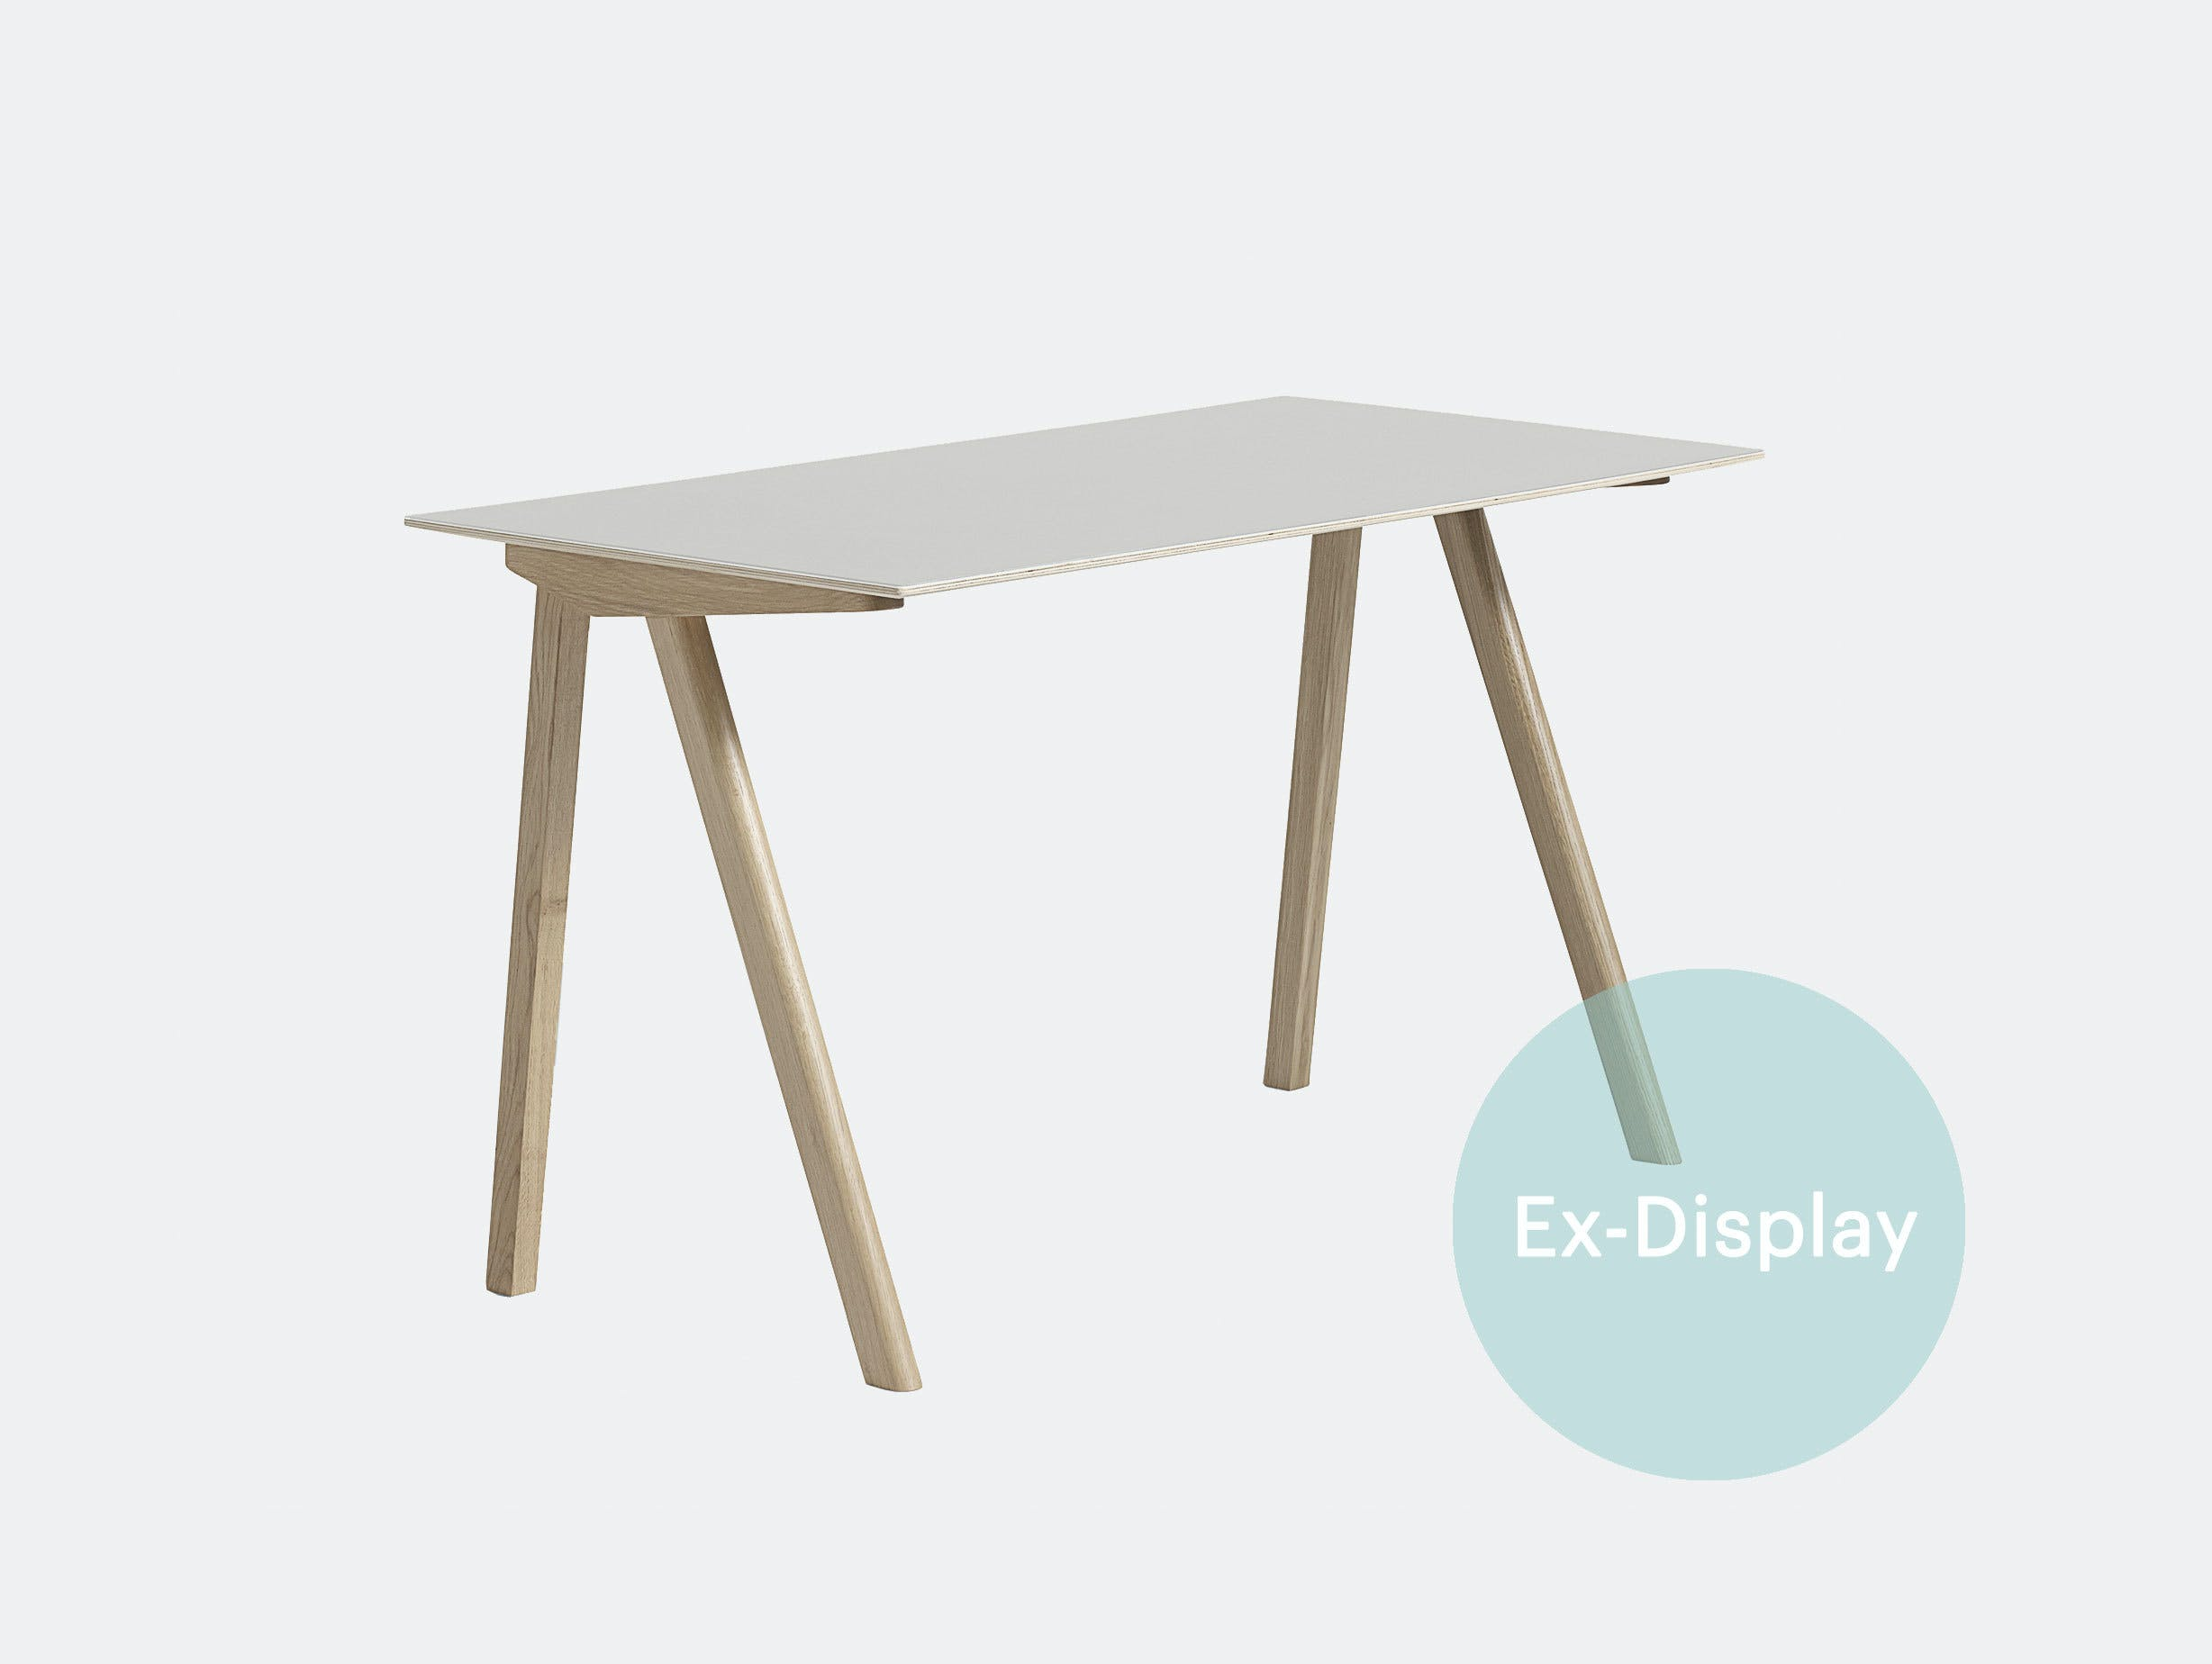 CPH 90 Desk / 40% off in our Summer Sale at £320 image